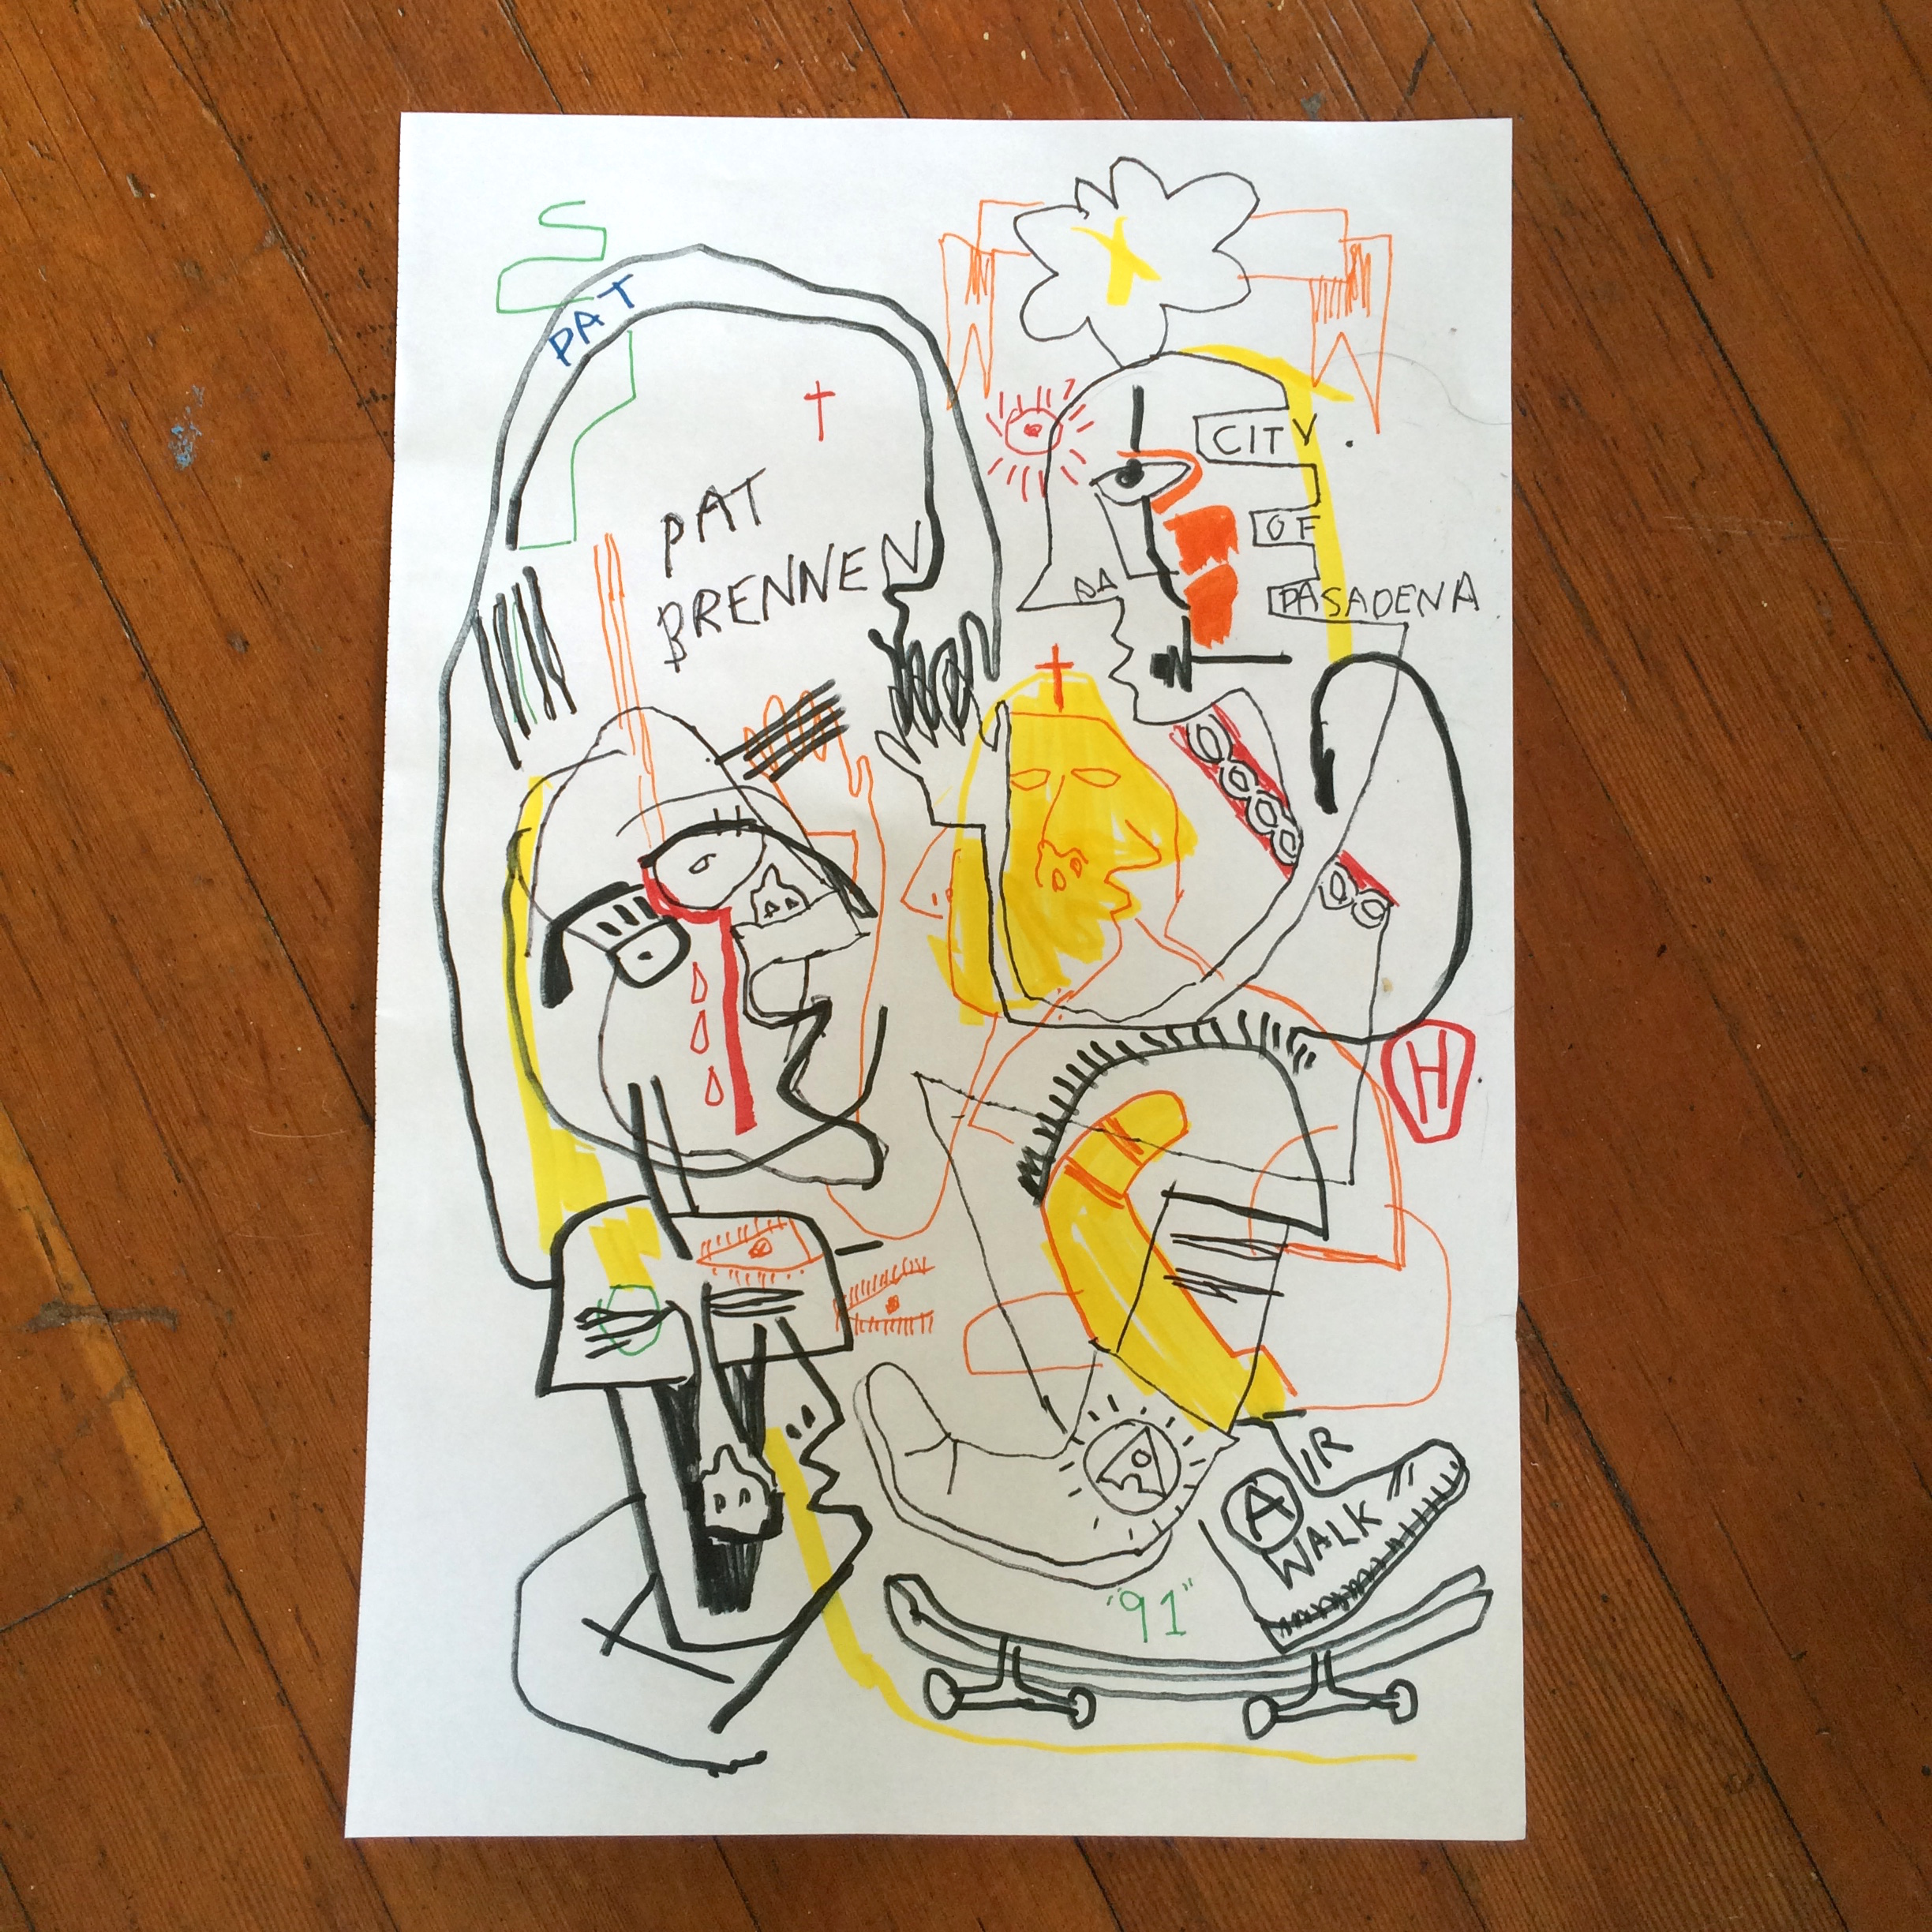 Gino Perez, Untitled (Pat Brennen #2), 2002, marker on paper, 18 x 12 inches, $150